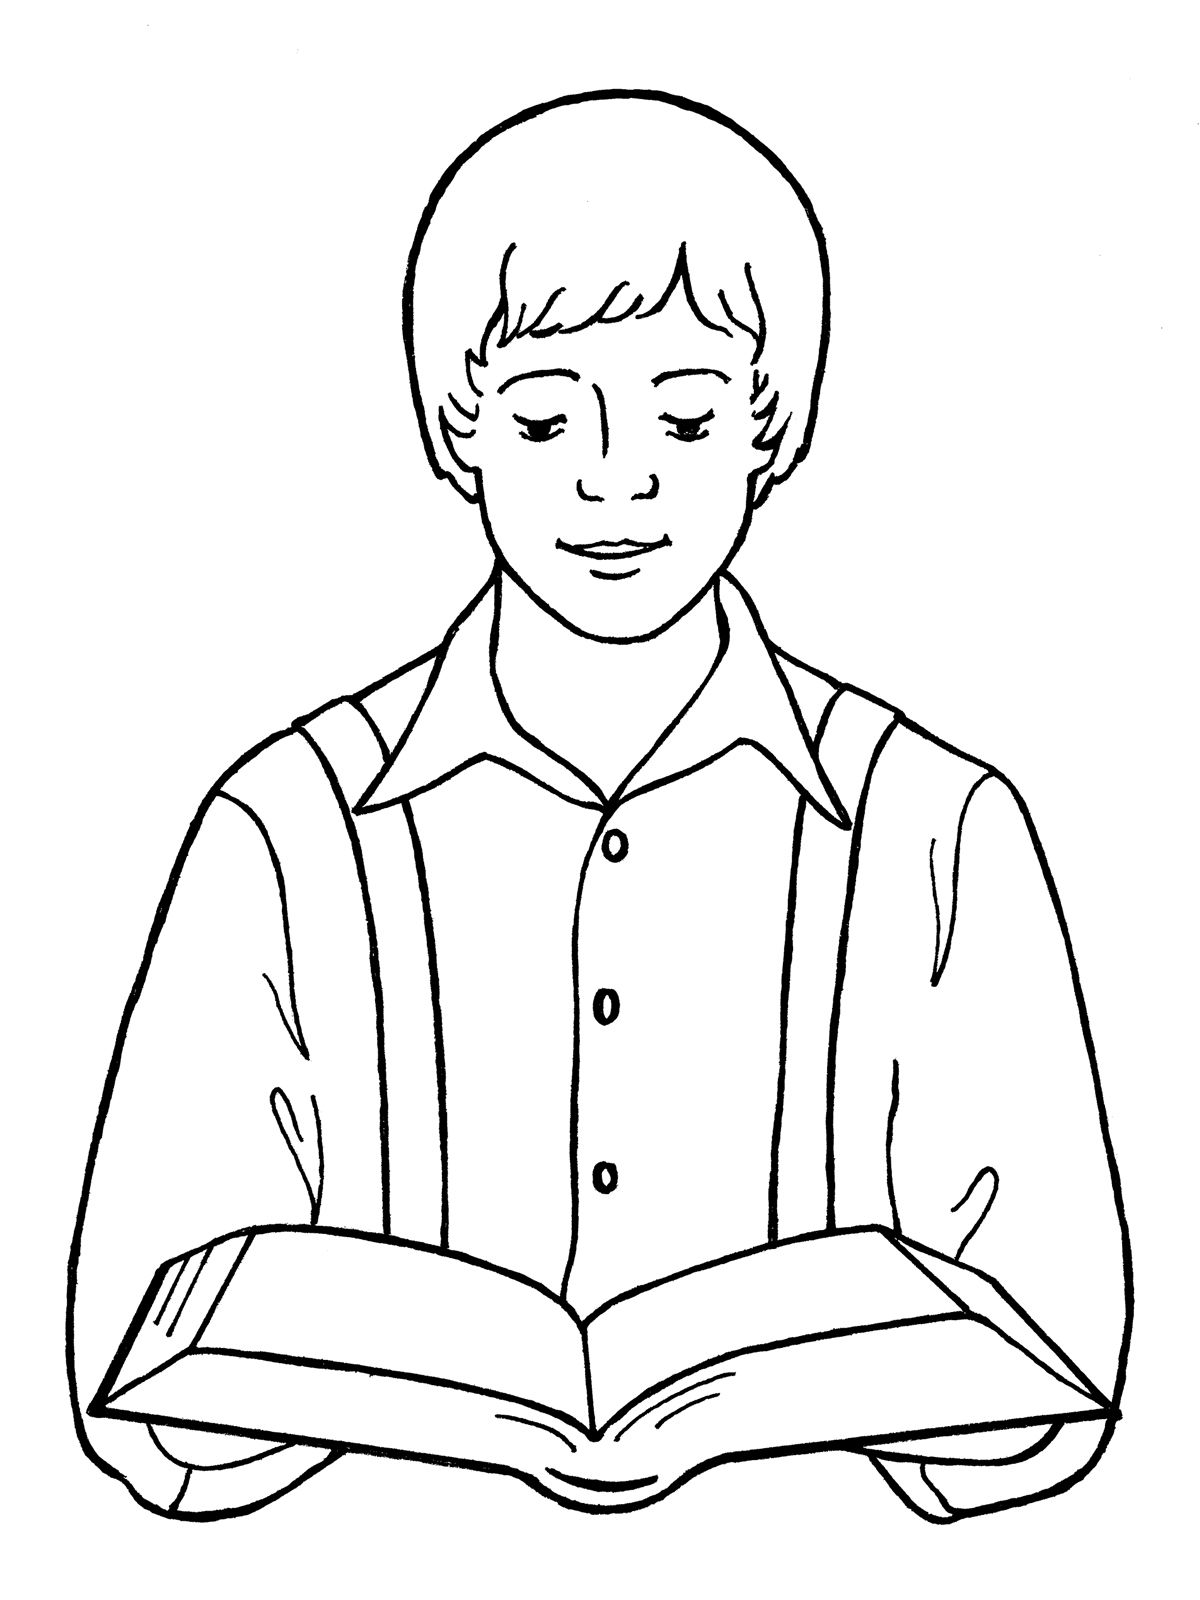 Primary 3 Lesson 4 Joseph Smith Reading Bible Bible Coloring